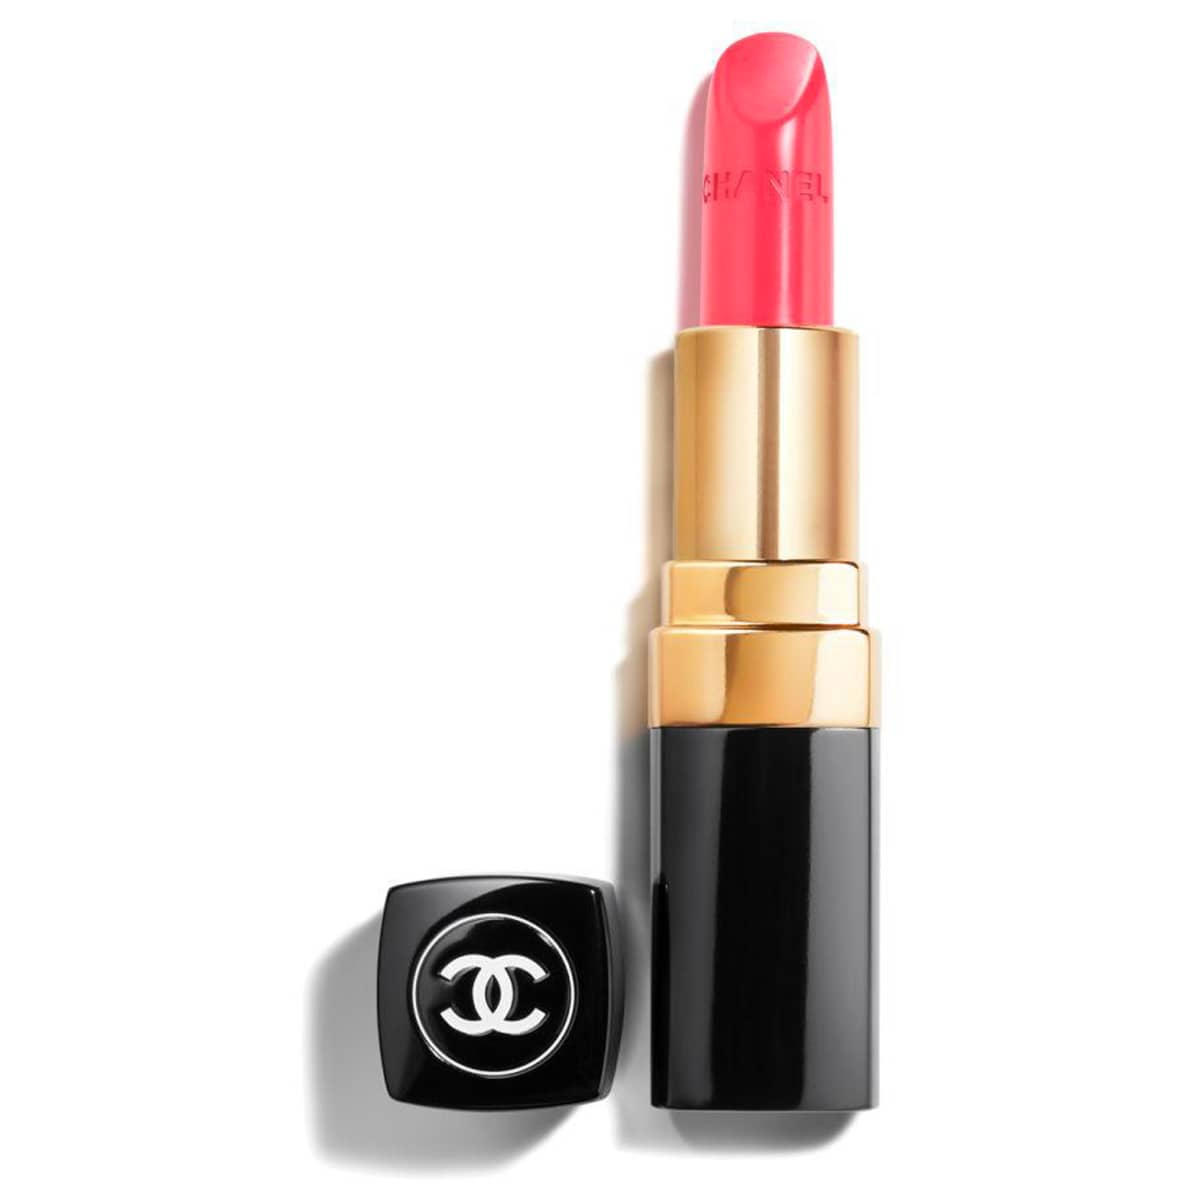 Chanel Ultra Hydrating Lip Colour Ami 486